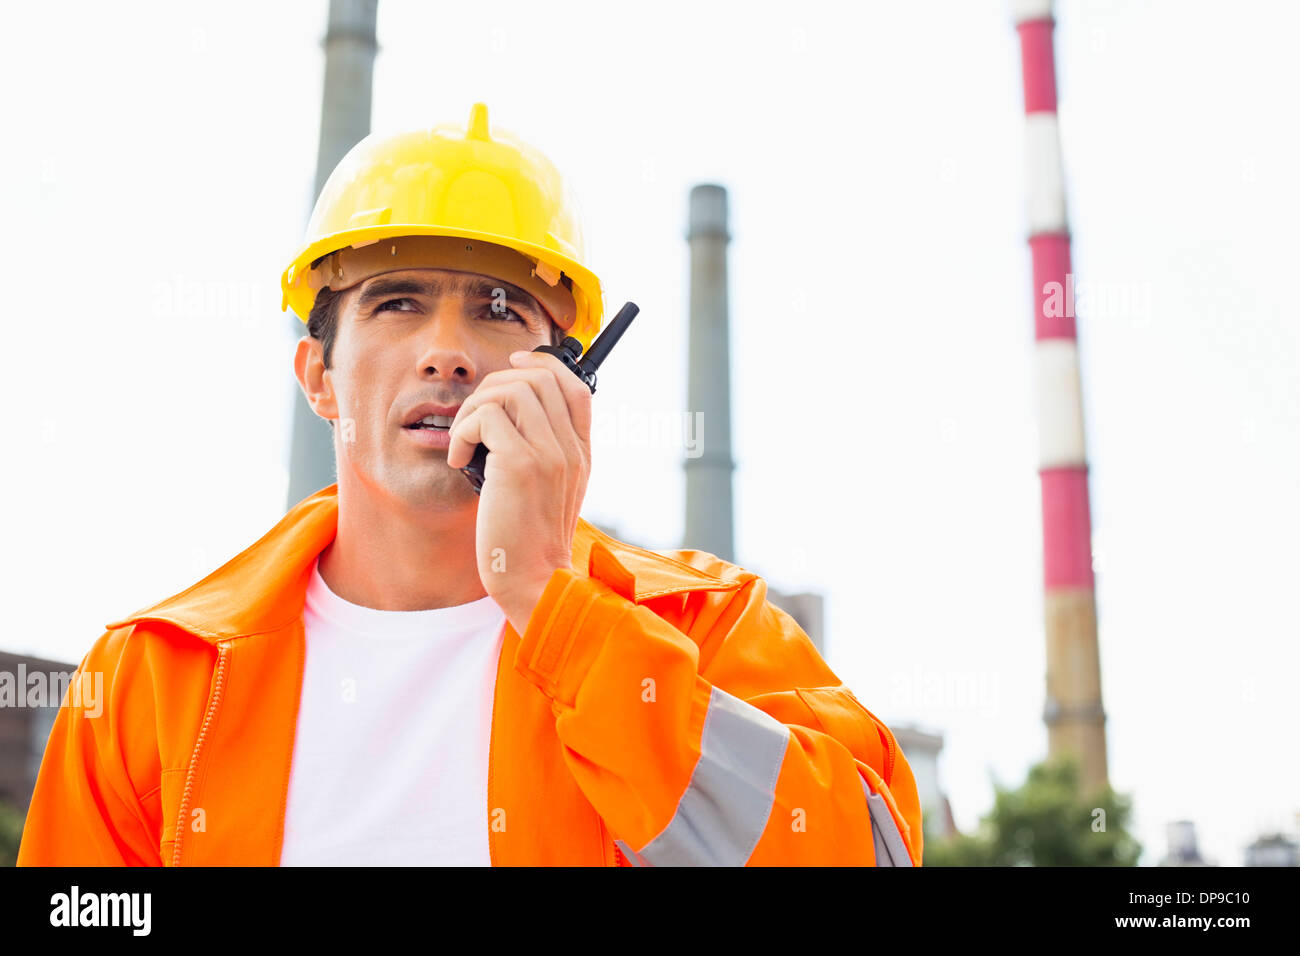 Male construction worker wearing reflective workwear communicating on walkie-talkie at site - Stock Image